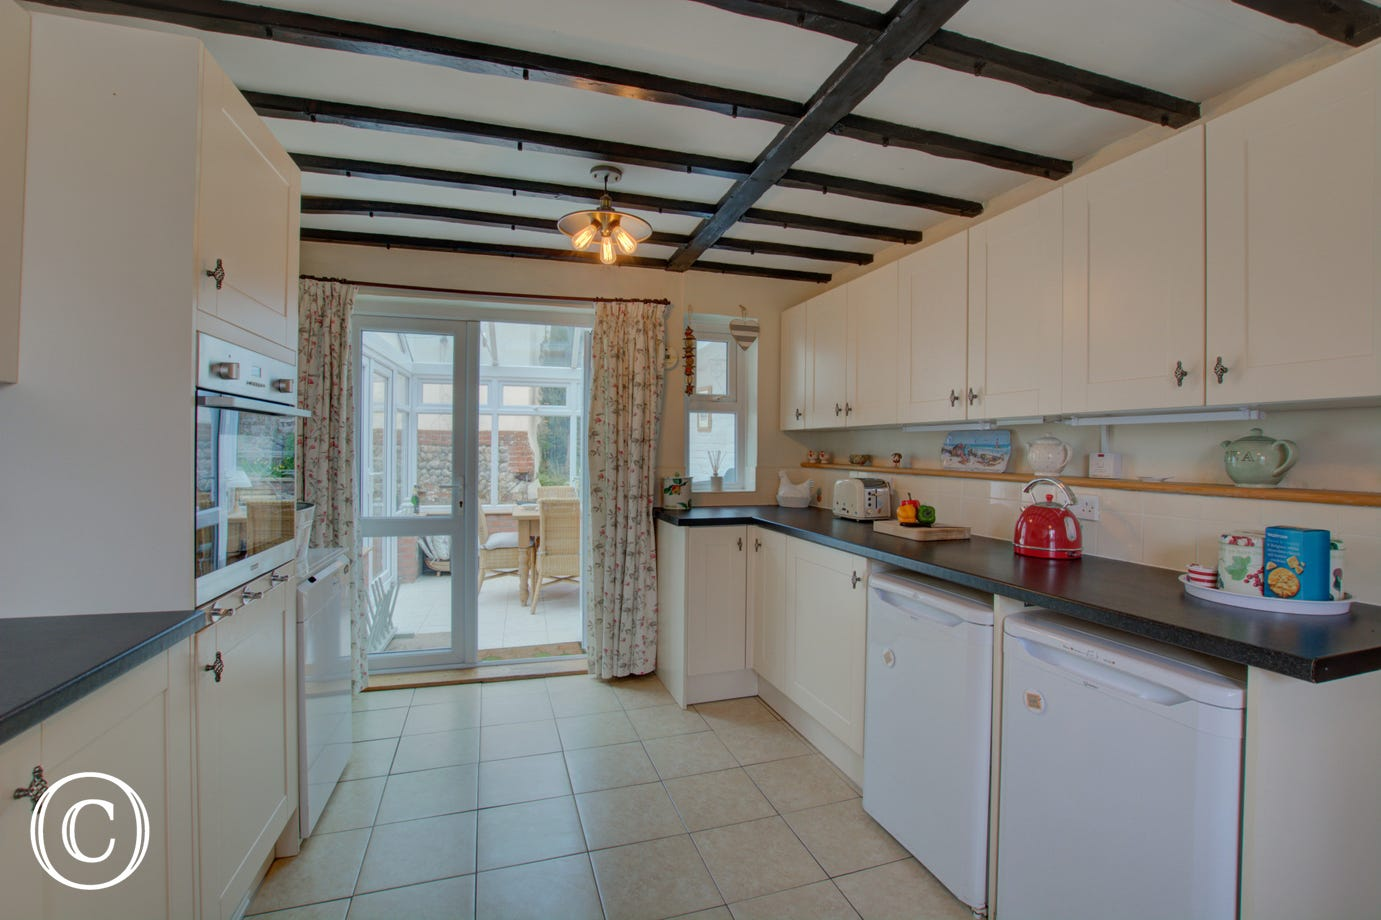 Spacious kitchen with electric oven and hob